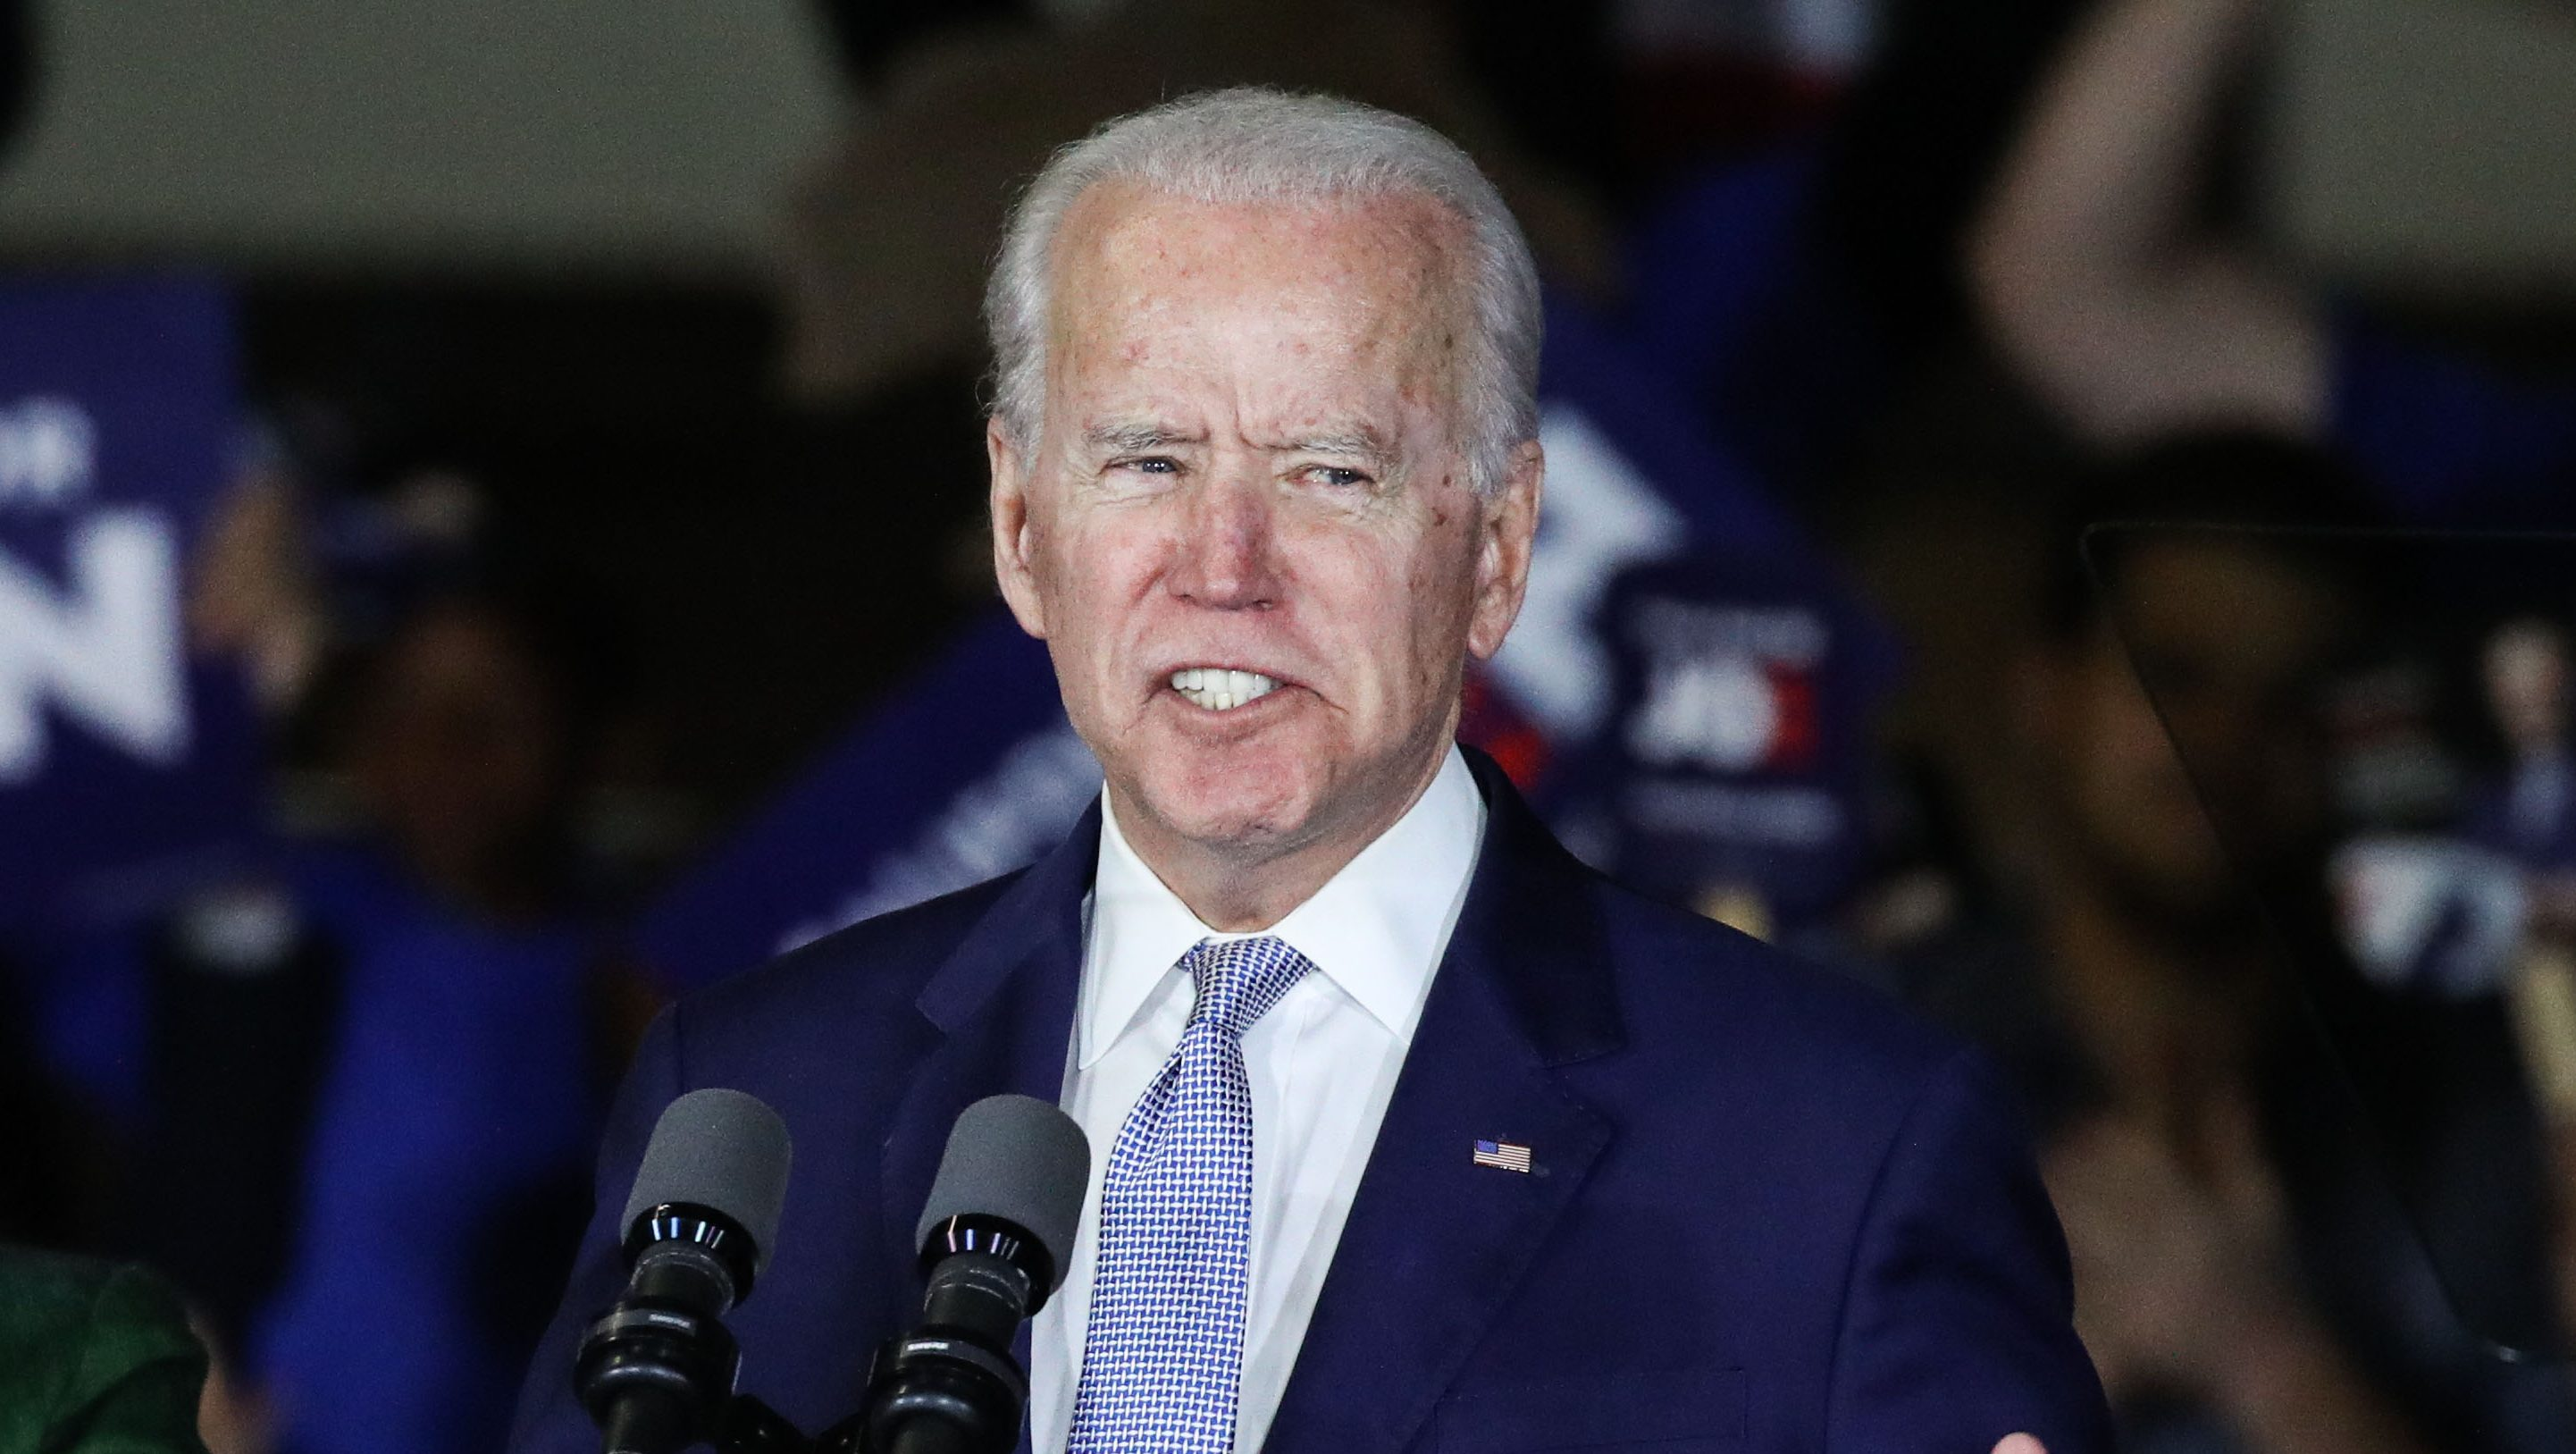 Joe Biden's Campaign Plans 'I Will Vote' Concert With John Legend, Cher And Andra Day